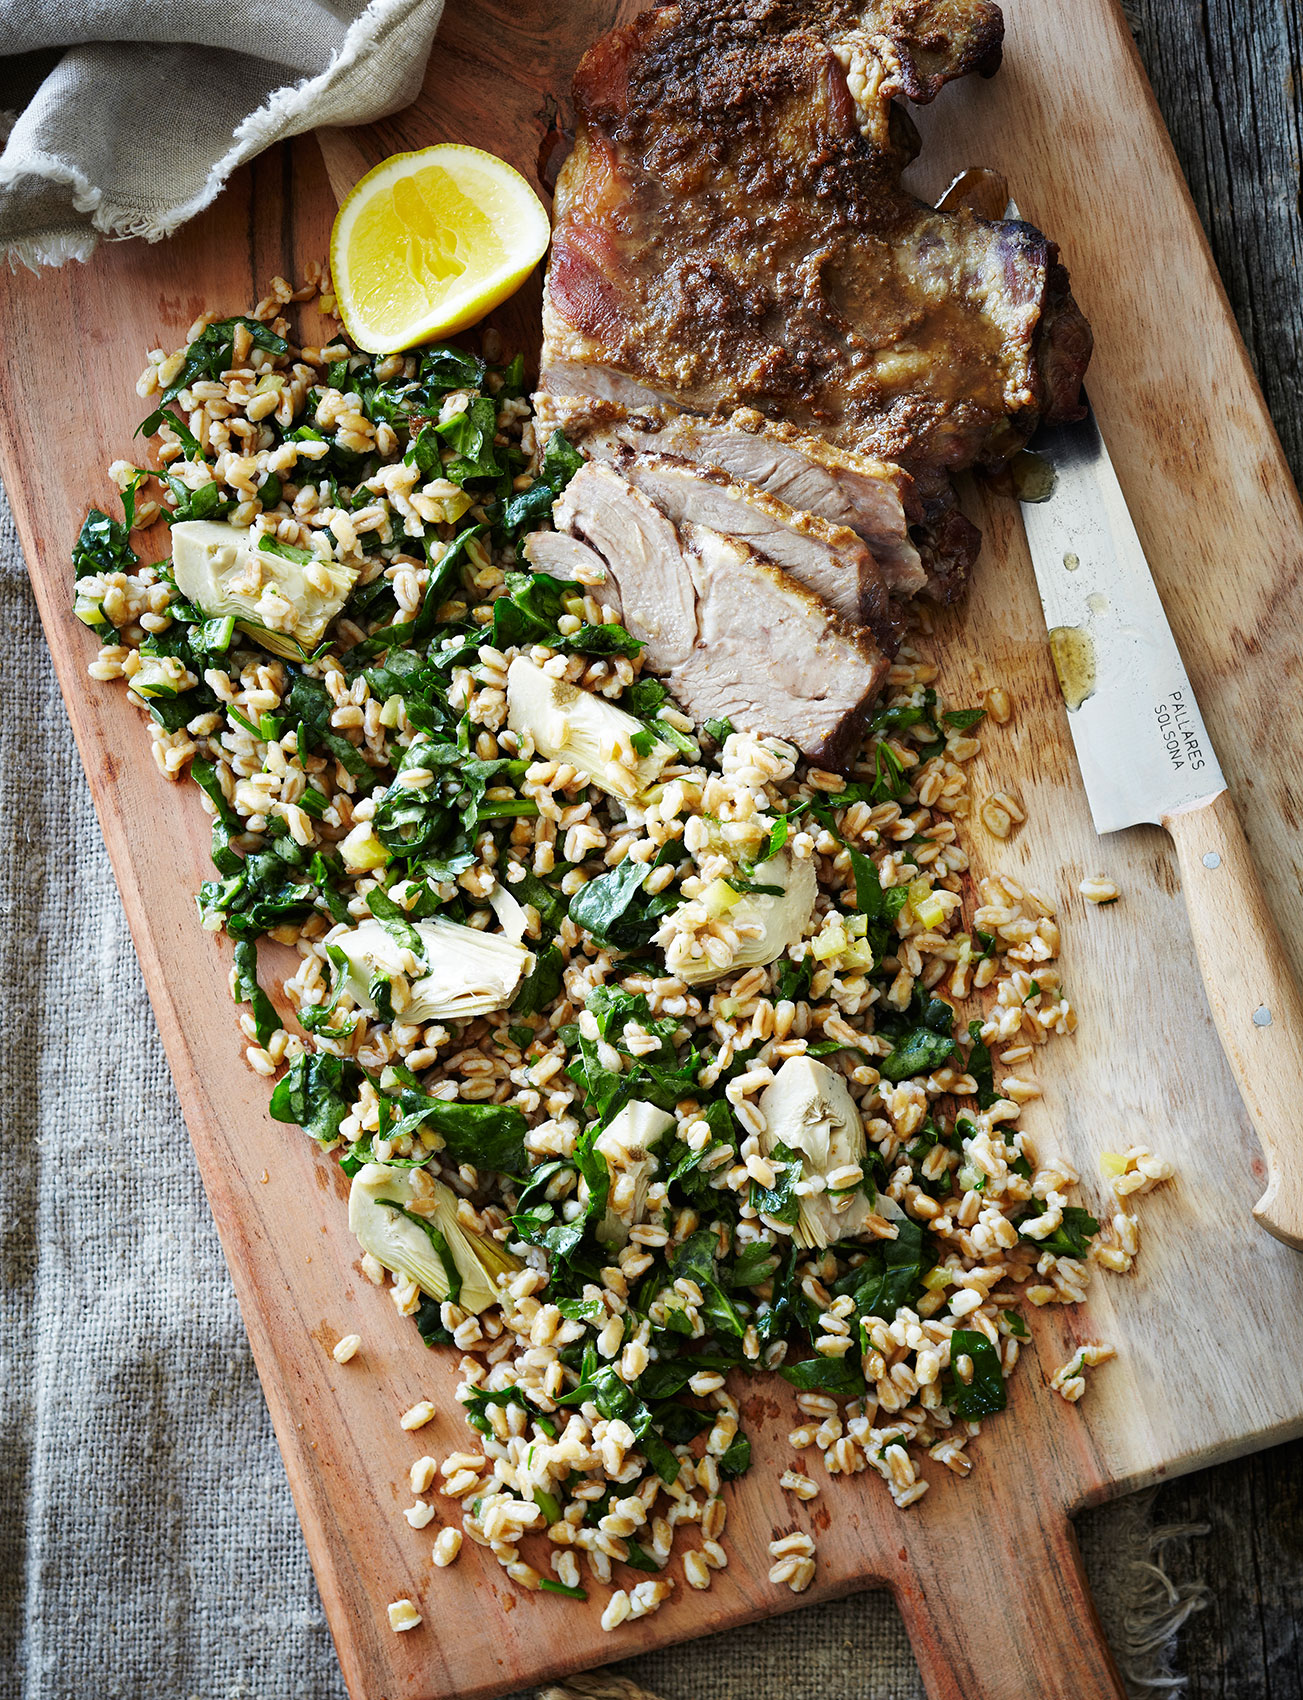 Penguin_Salads_Meat_LambSpelt